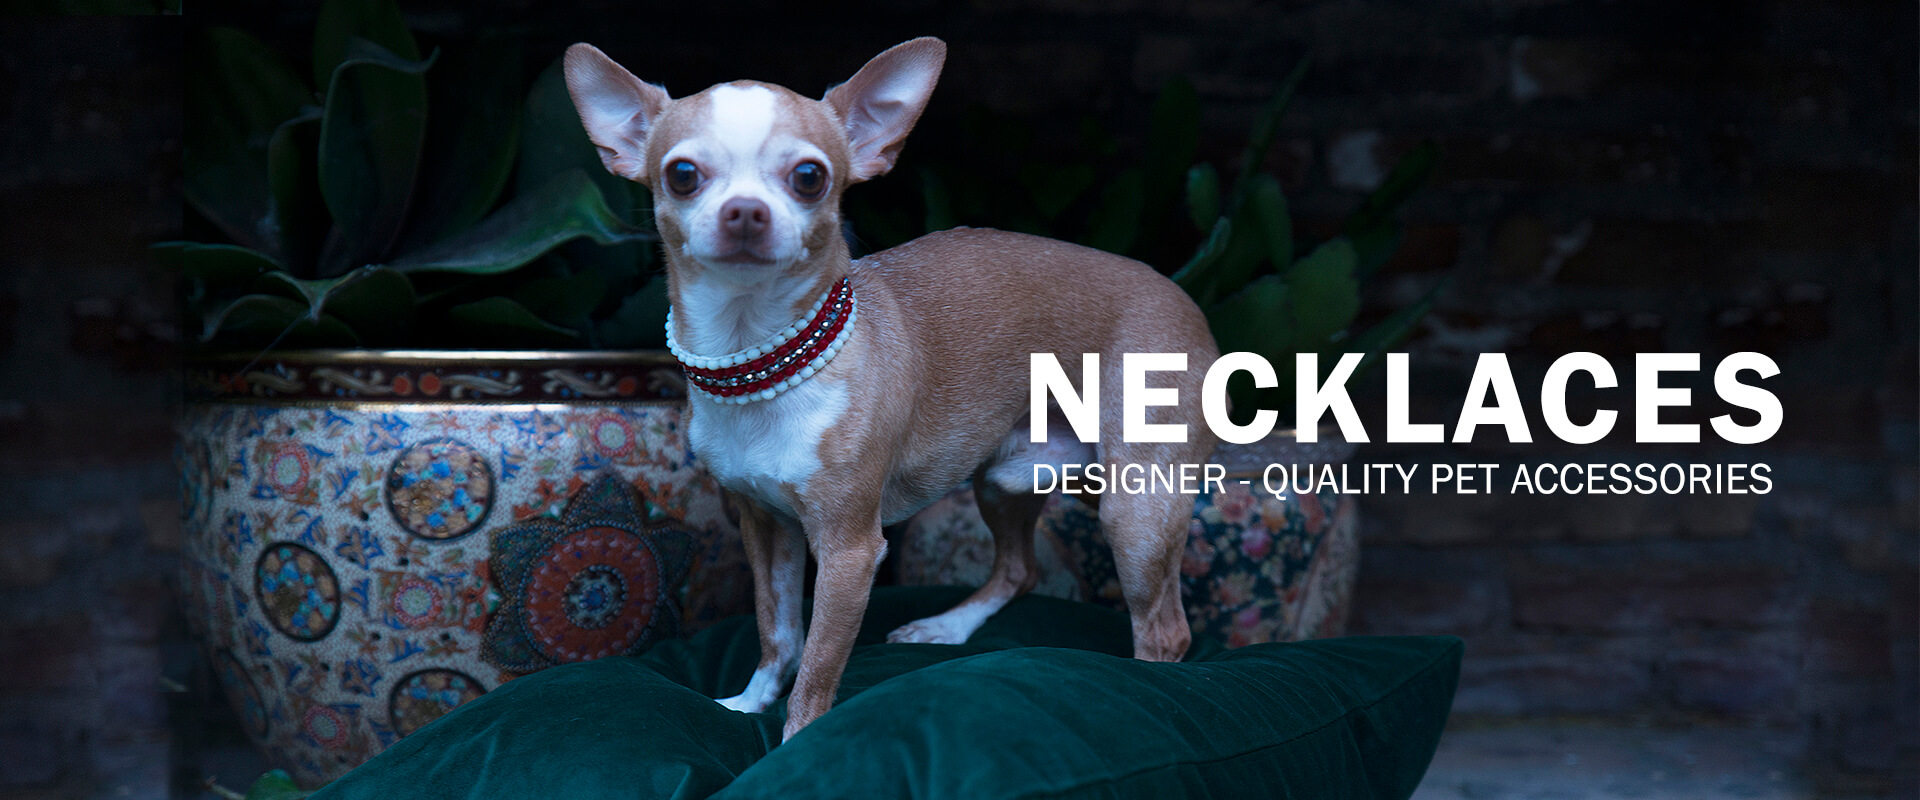 Necklaces | Designer-quality pet accessories by zikos